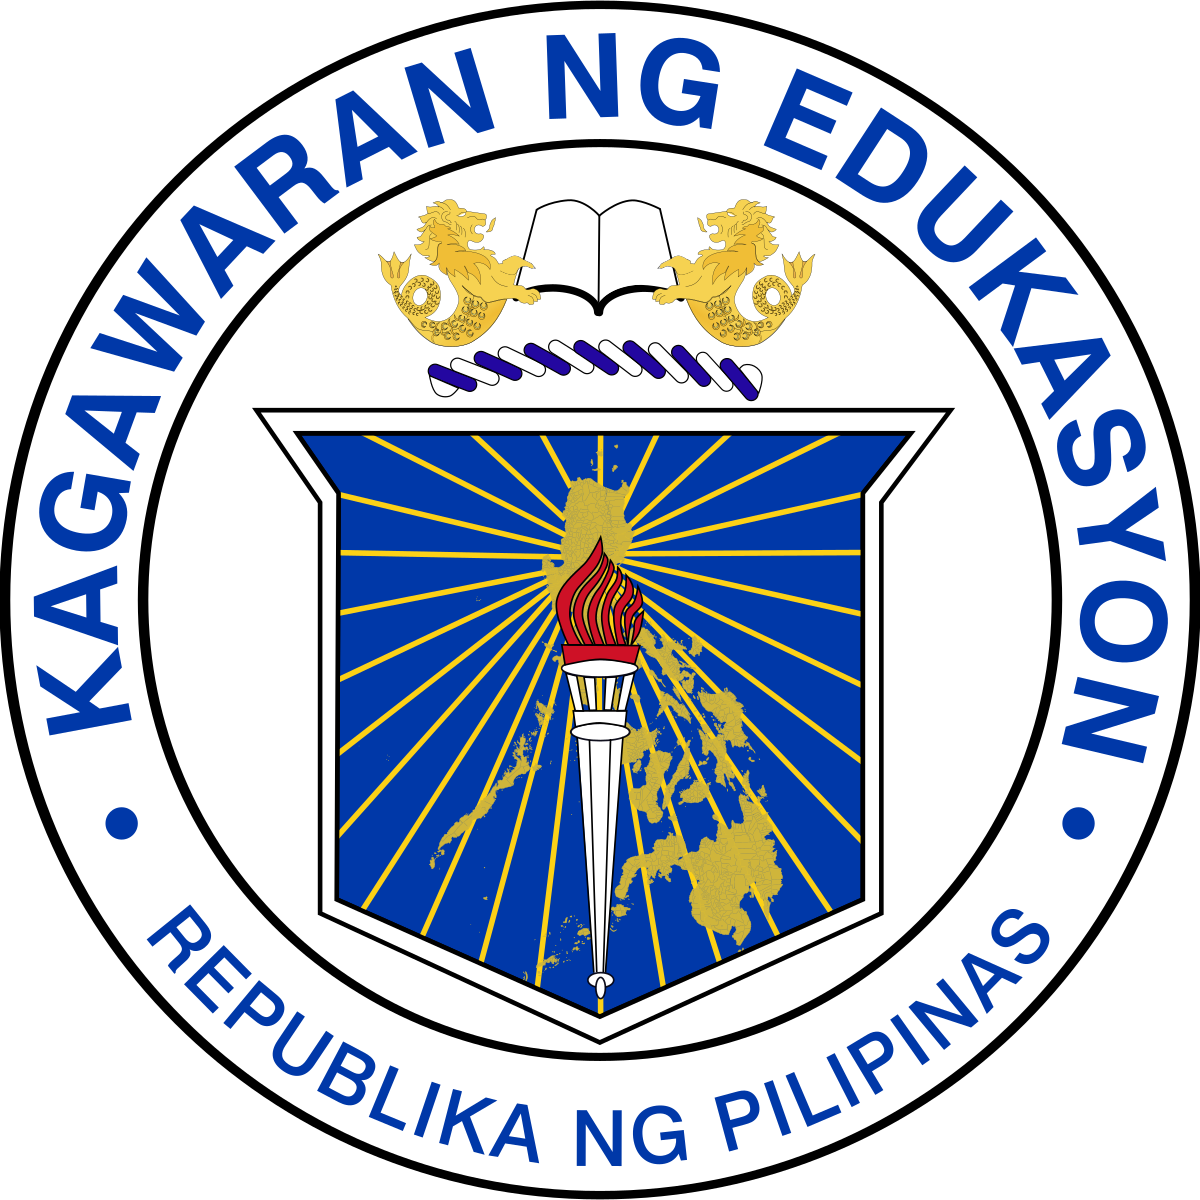 Department of education Logos.